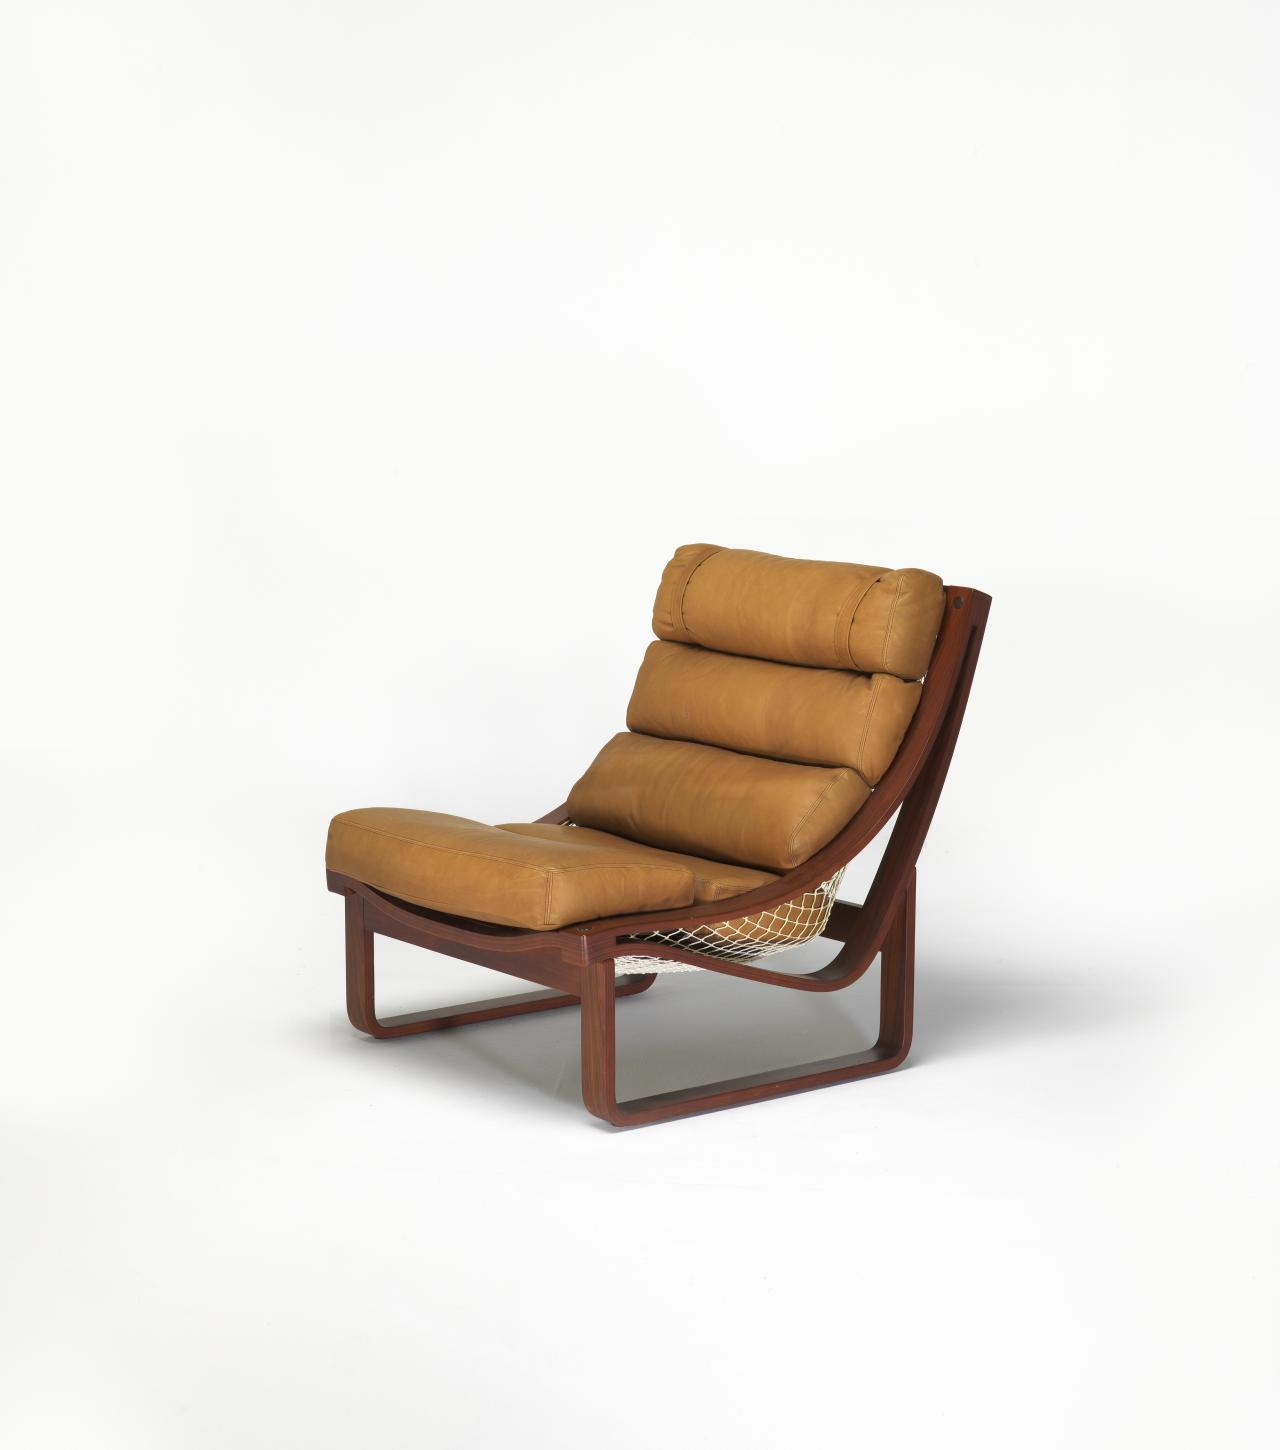 Twen T-Four lounge chair and footstool